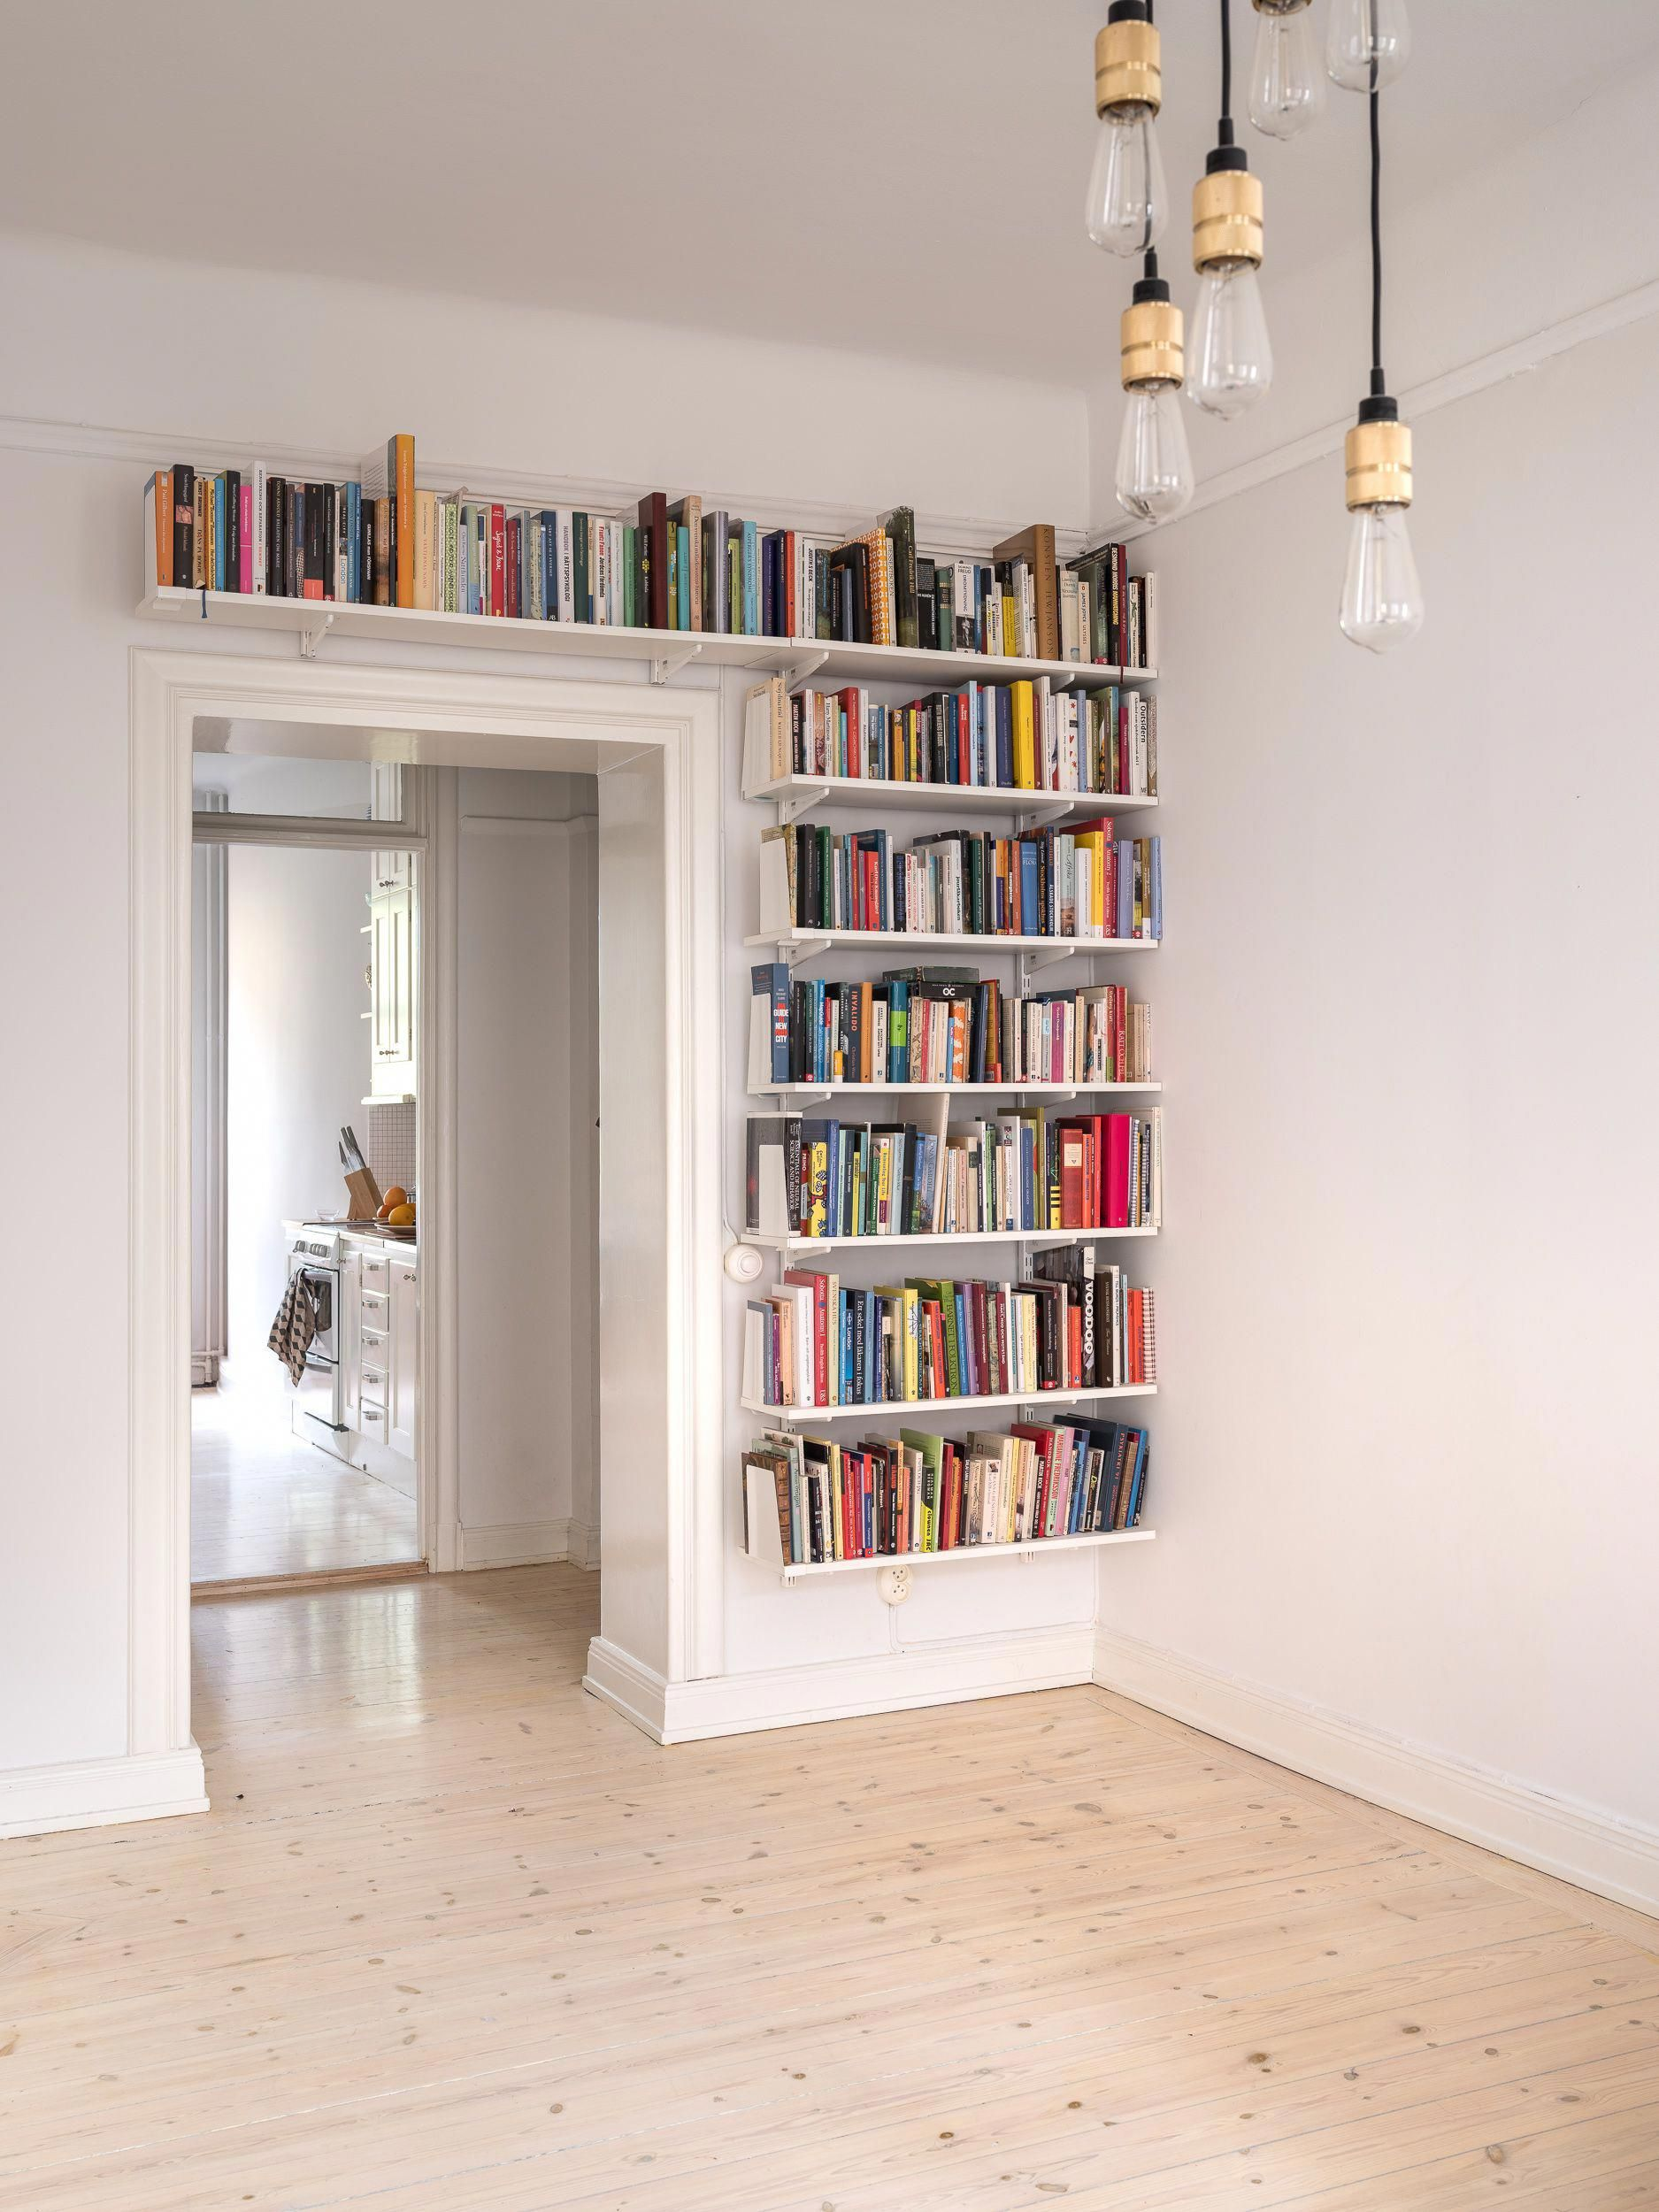 Library Room Ideas For Small Spaces: 5 Essentials Tips For A Successful Living Room Design